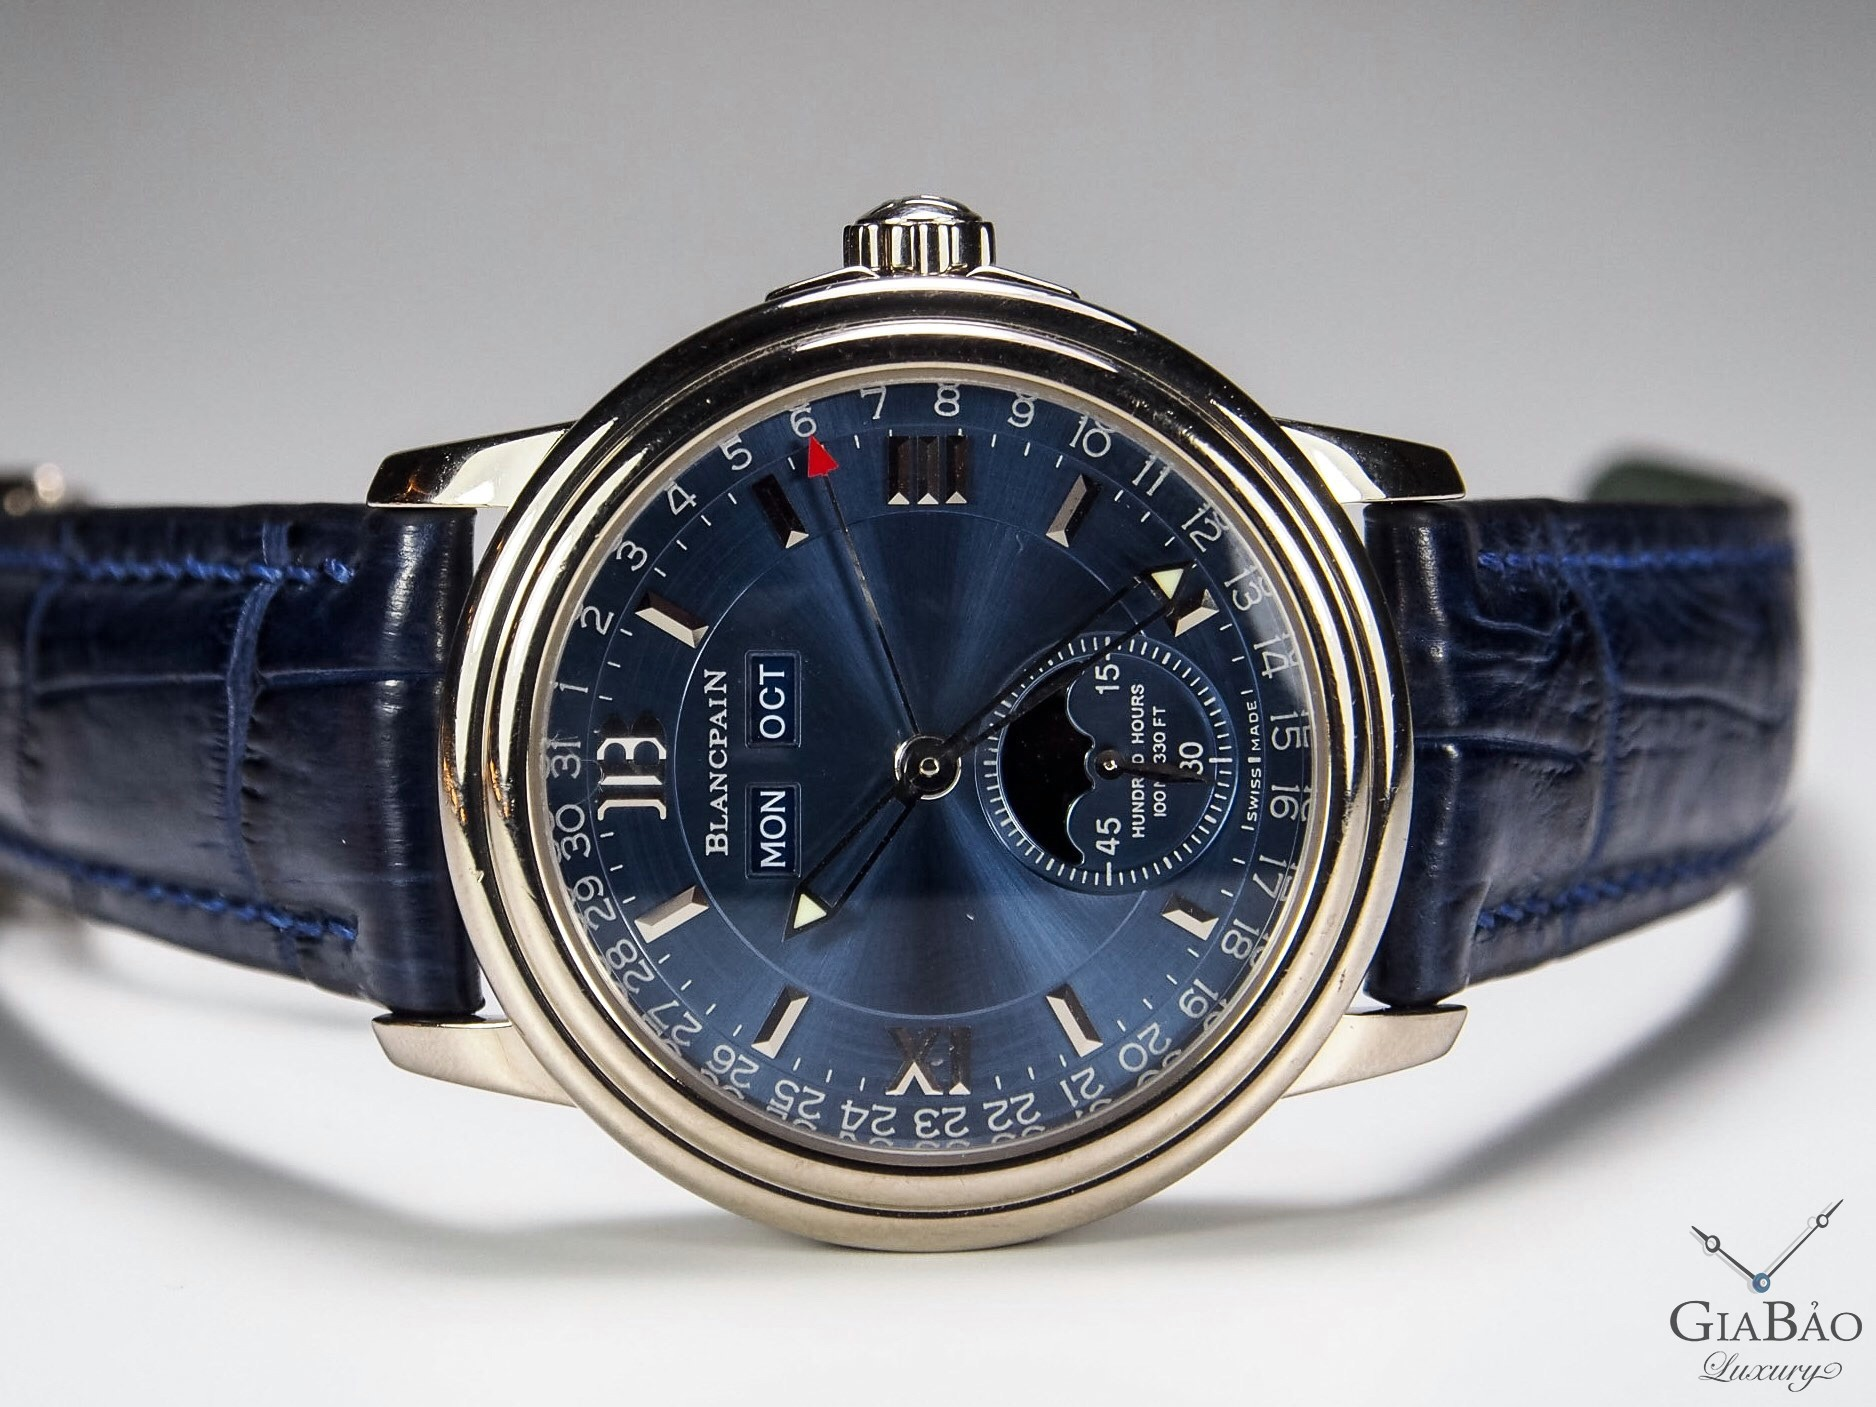 Đồng Hồ Blancpain Leman Moonphase Complete Calendar Mặt Số Xanh